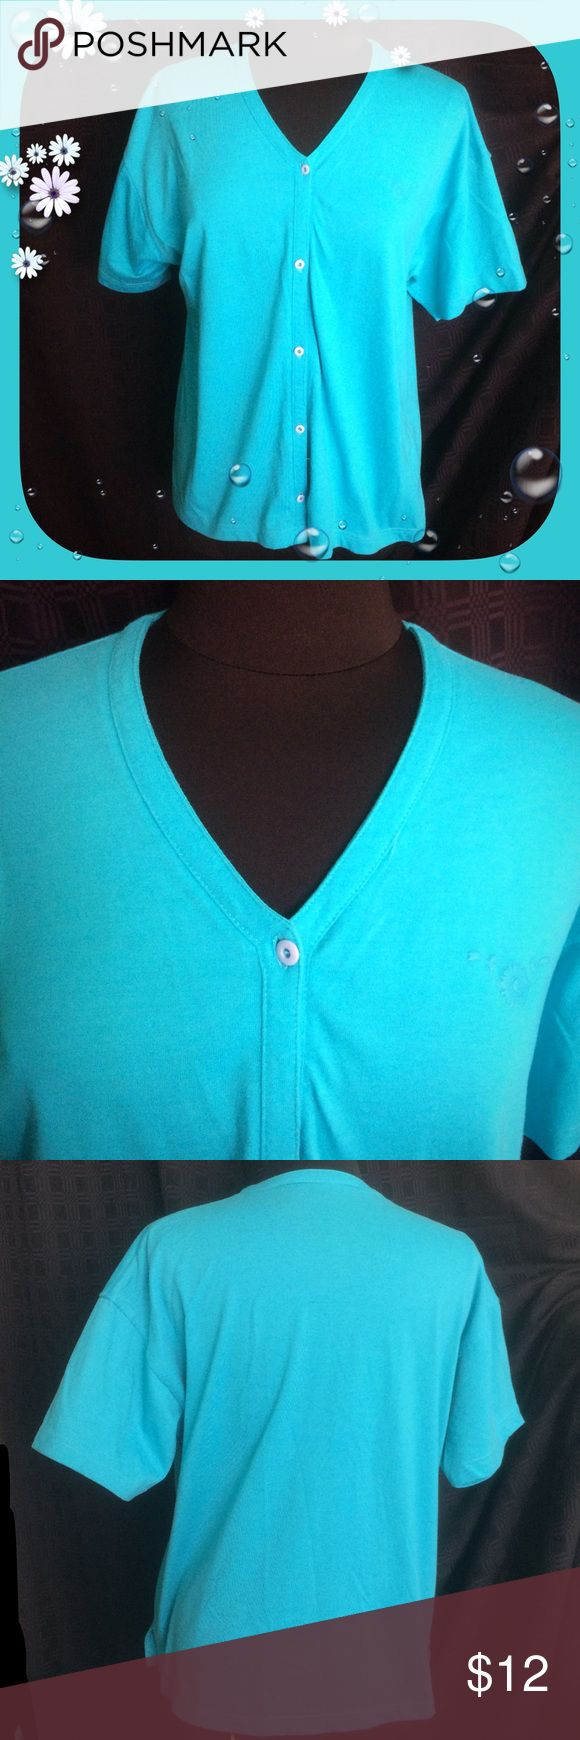 """Turquoise Cardigan / Short Sleeve / V neck Turquoise Cardigan / Short Sleeve Approx measurements laying flat: Bust 20"""" & Length 25"""" / No tags - it feels like a medium weight cotton to me.  Please feel free to make an offer - Enjoy BIG discounts on bundles & save $$$ on shipping! I package safely & ship fast.  TY & Happy Poshing! 💜💜💜B6 Tops Button Down Shirts"""